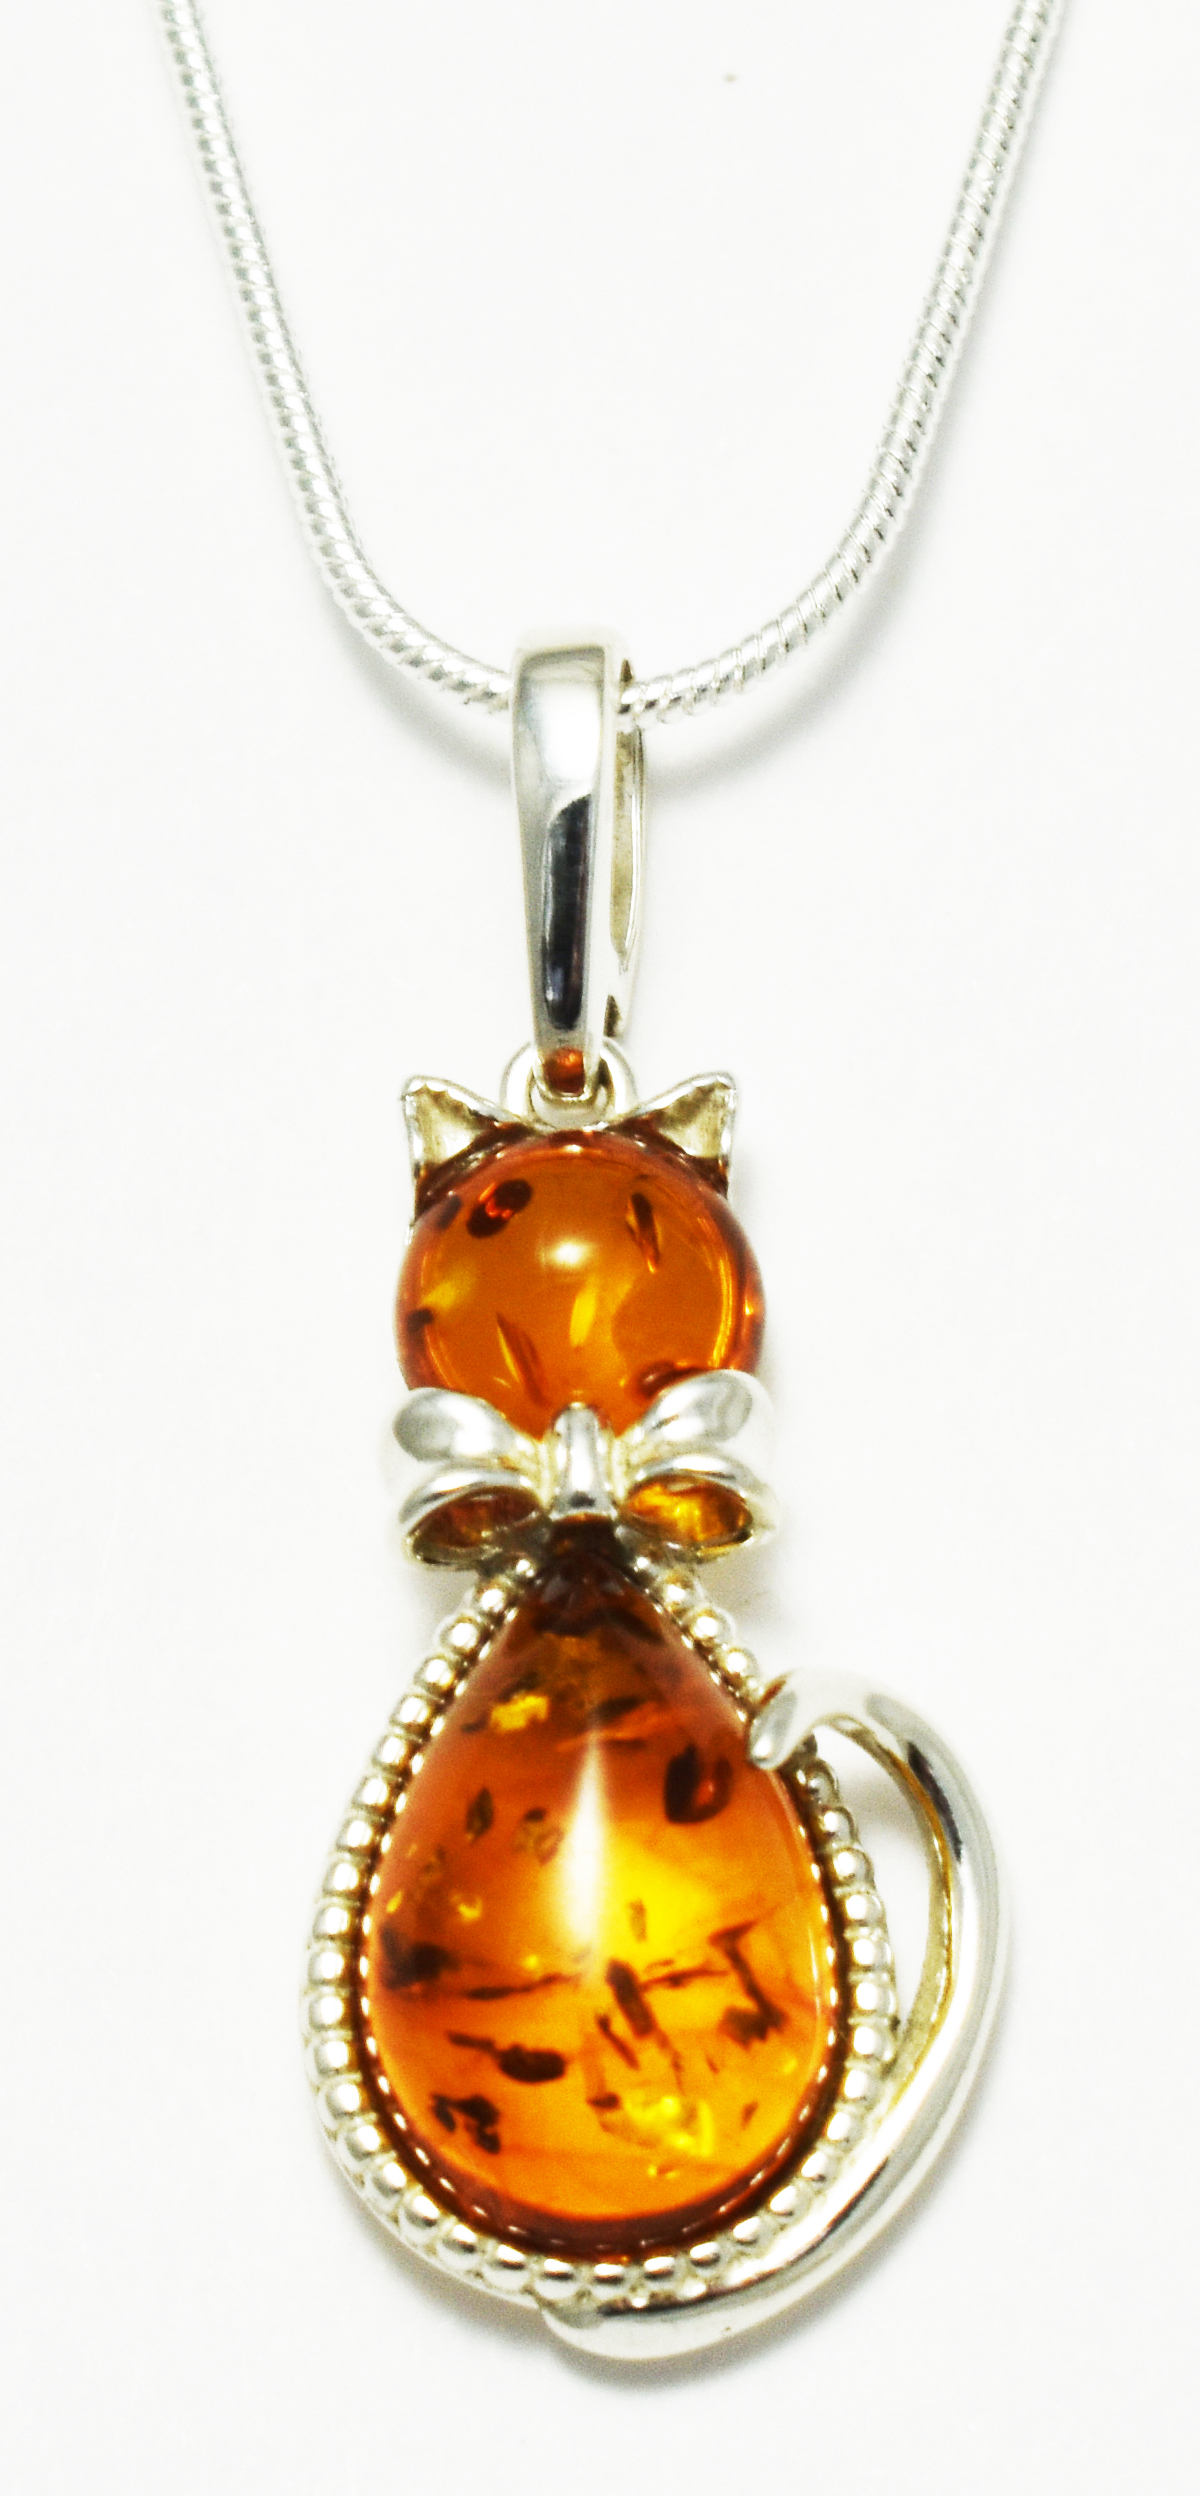 Gorgeous cat pendant hand made from Baltic Amber and silver.